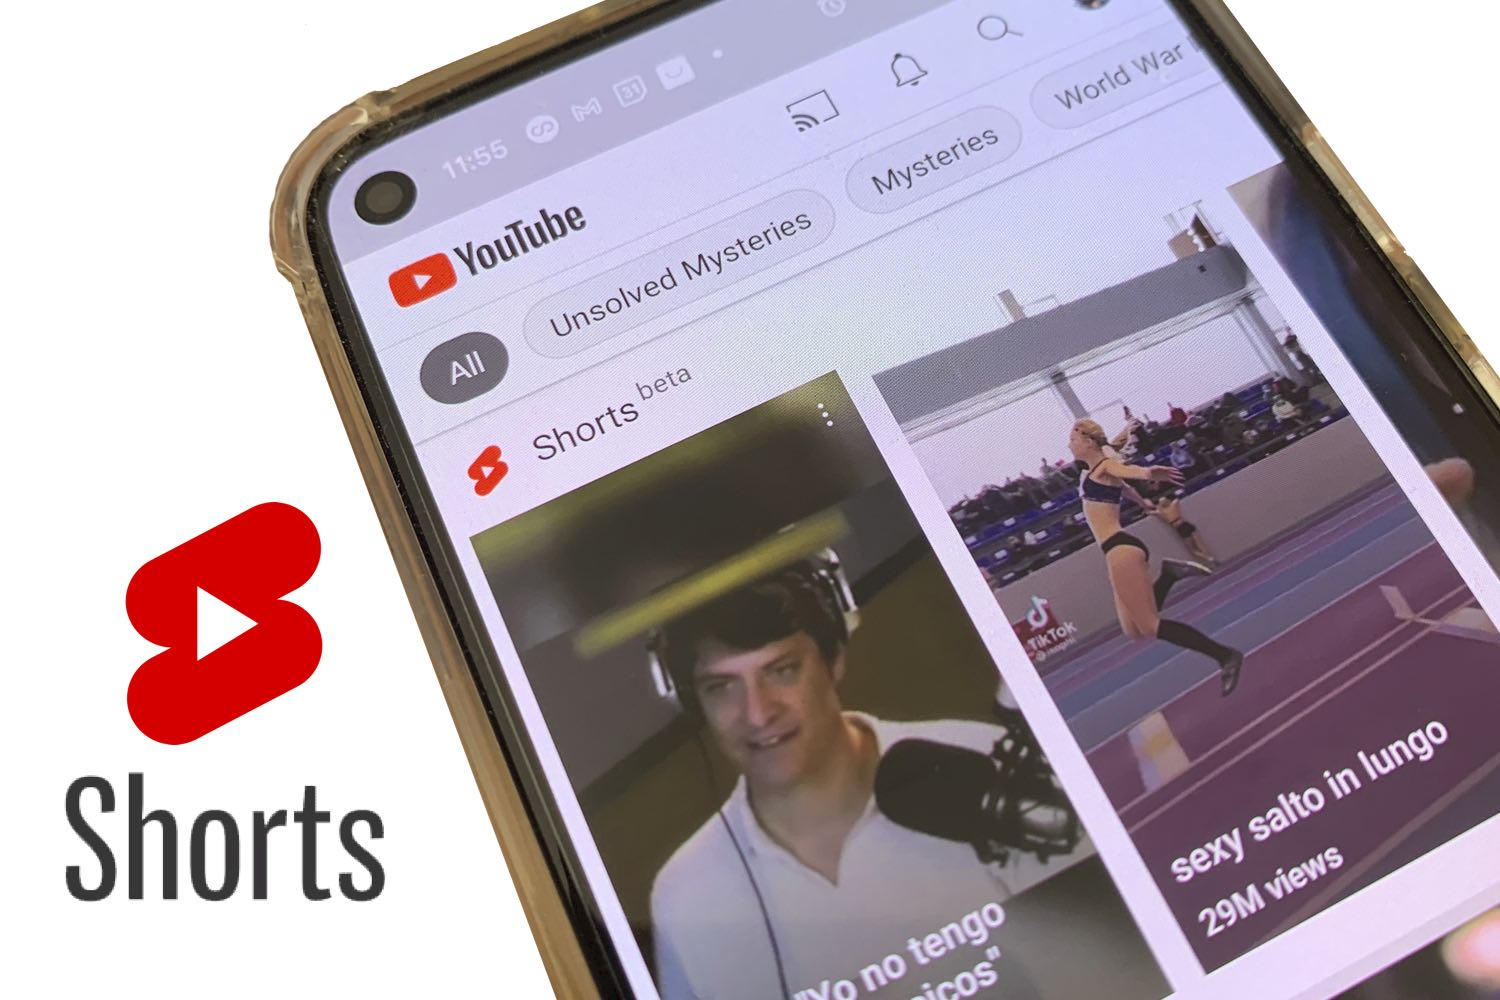 youtube shorts, youtube shorts videos